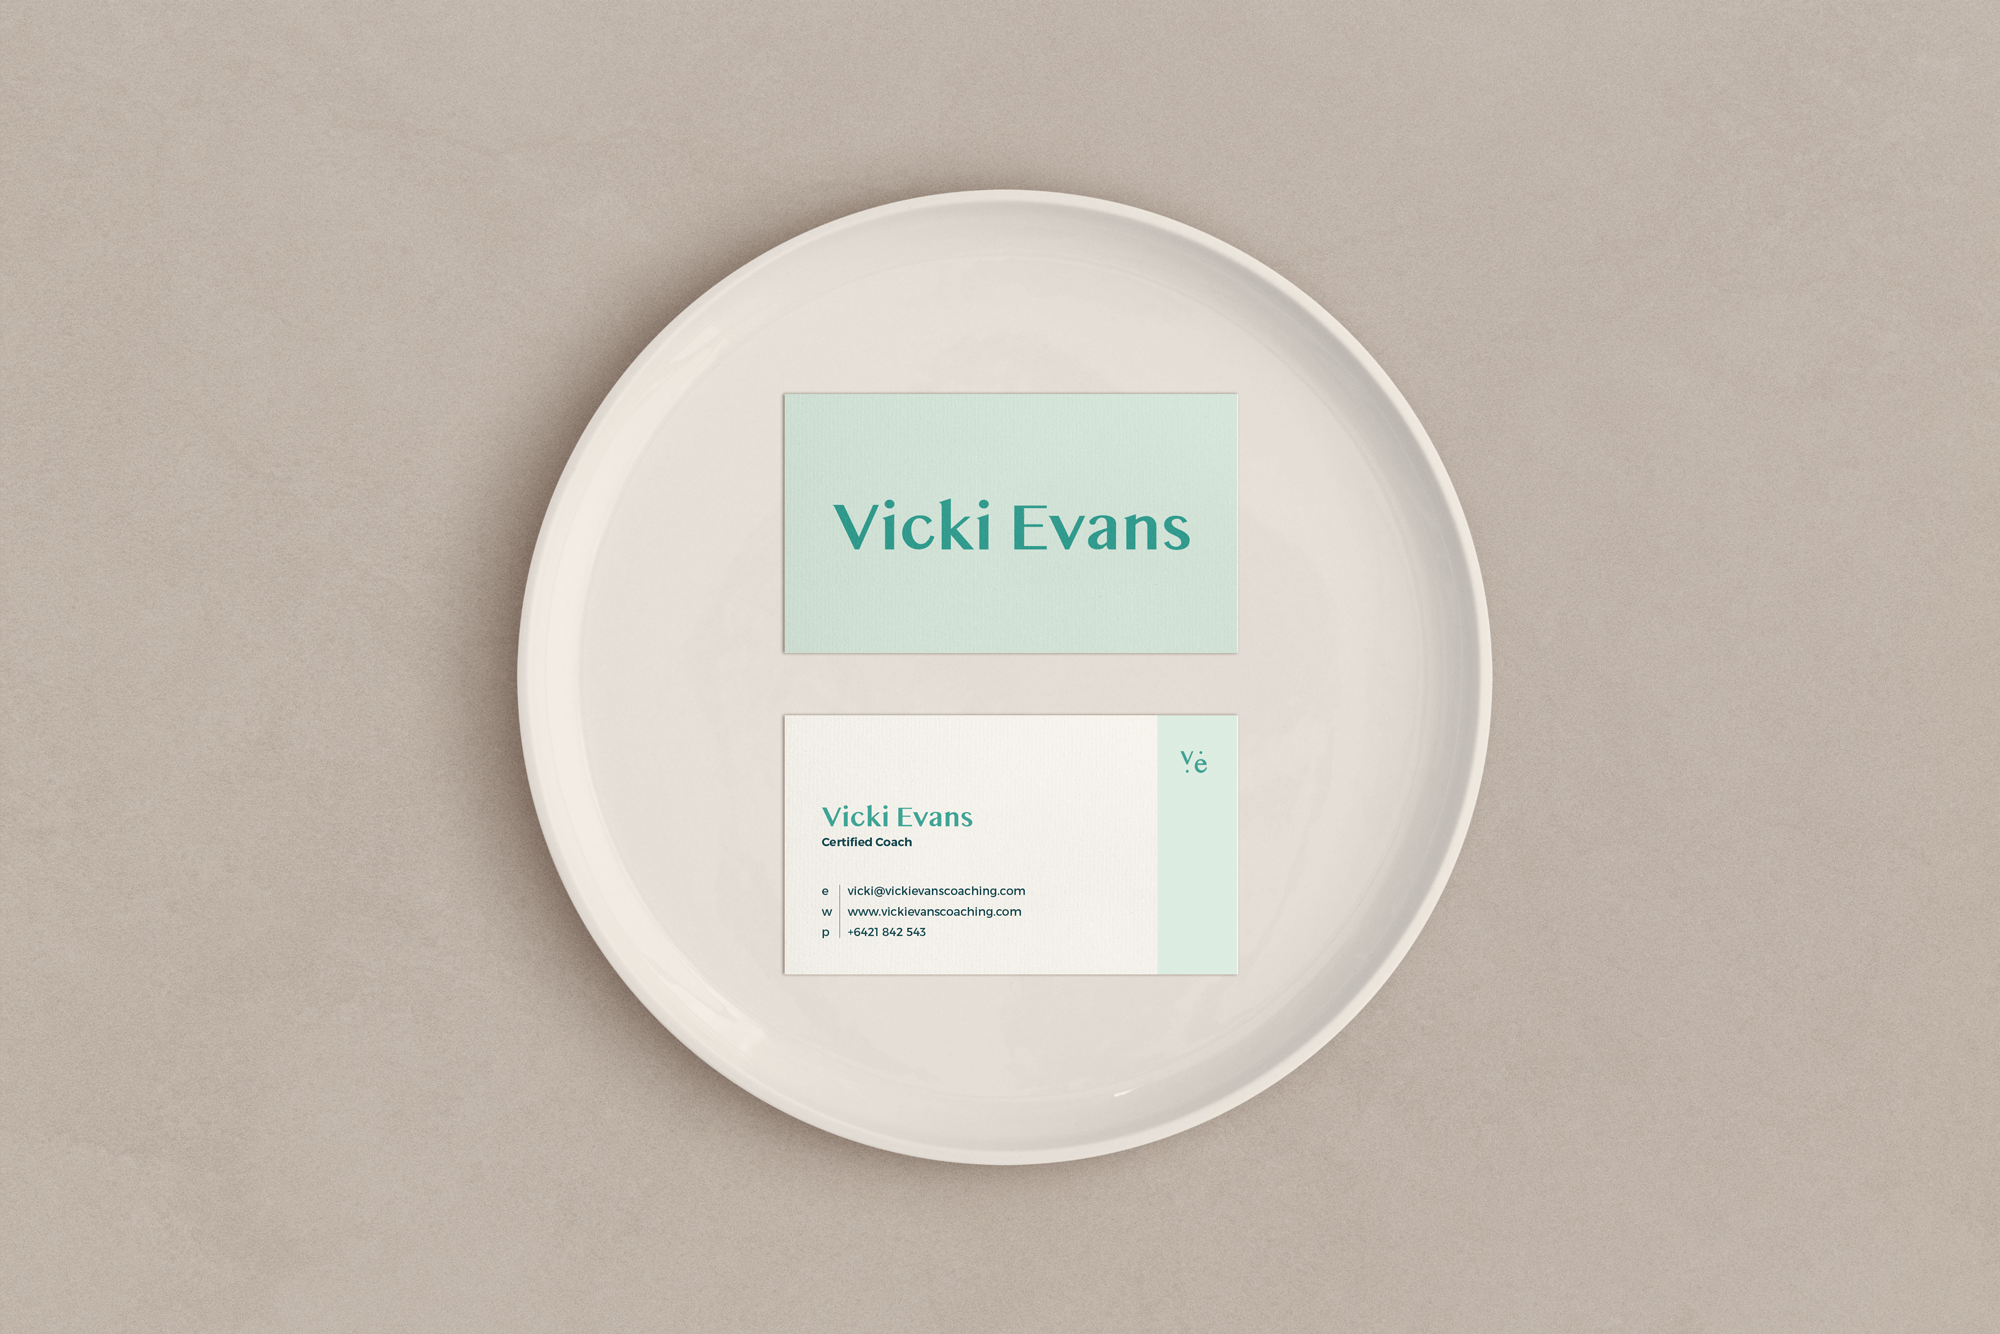 Vicki Evans Coaching business cards - by January Made Design